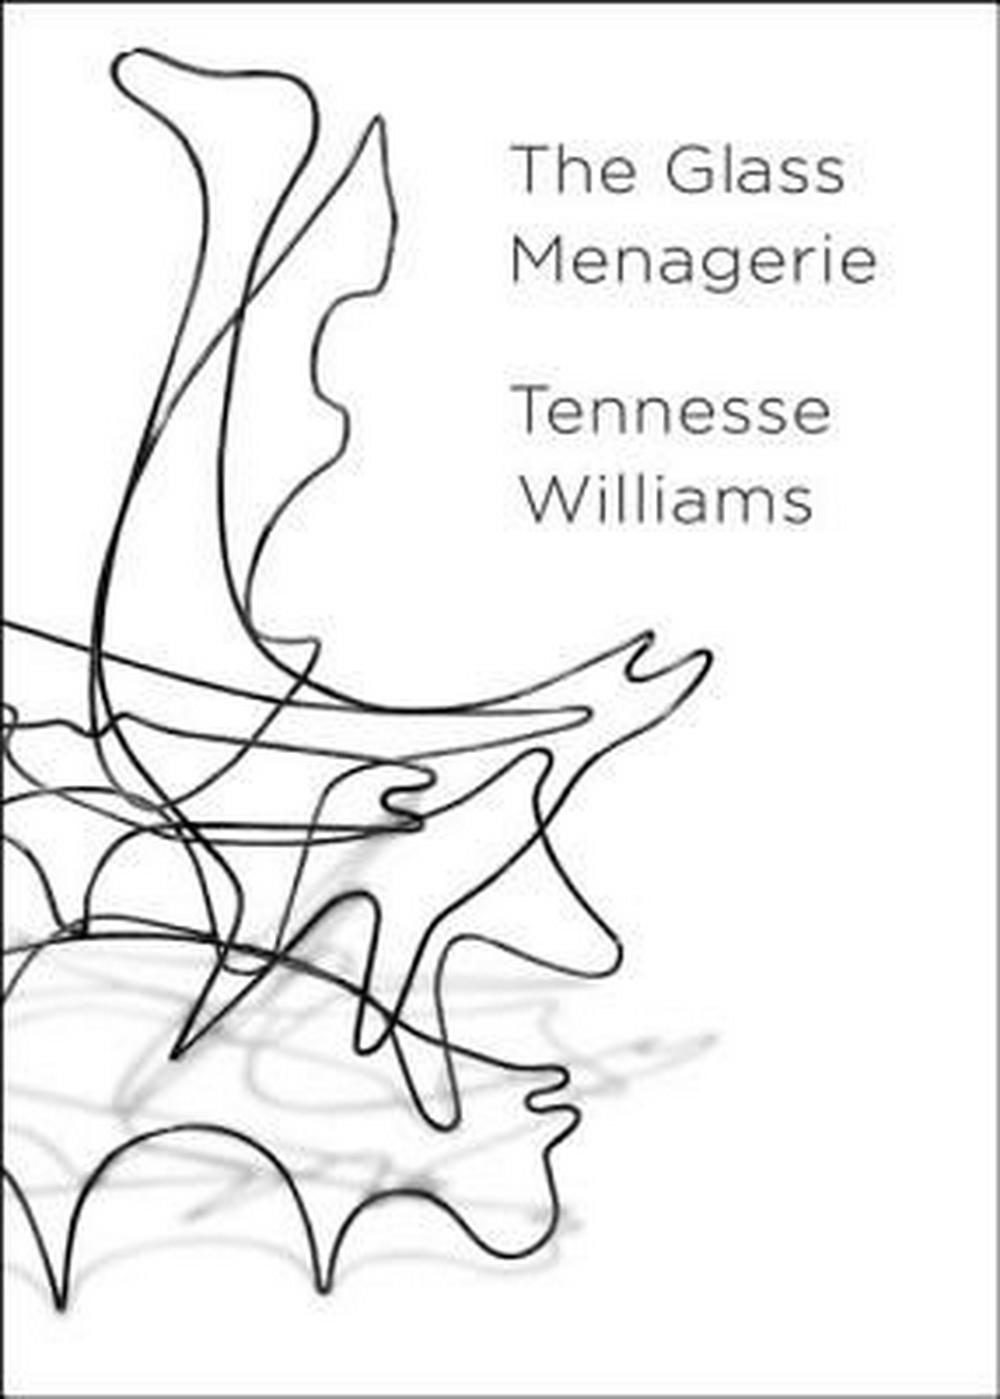 an examination of the play the glass menagerie by tennessee williams 1 the glass menagerie by tennessee wiliams test 1 1: the action of the play takes place in the a 1930's b 1950's c 1890's d 1960's 2: the setting of the play is.